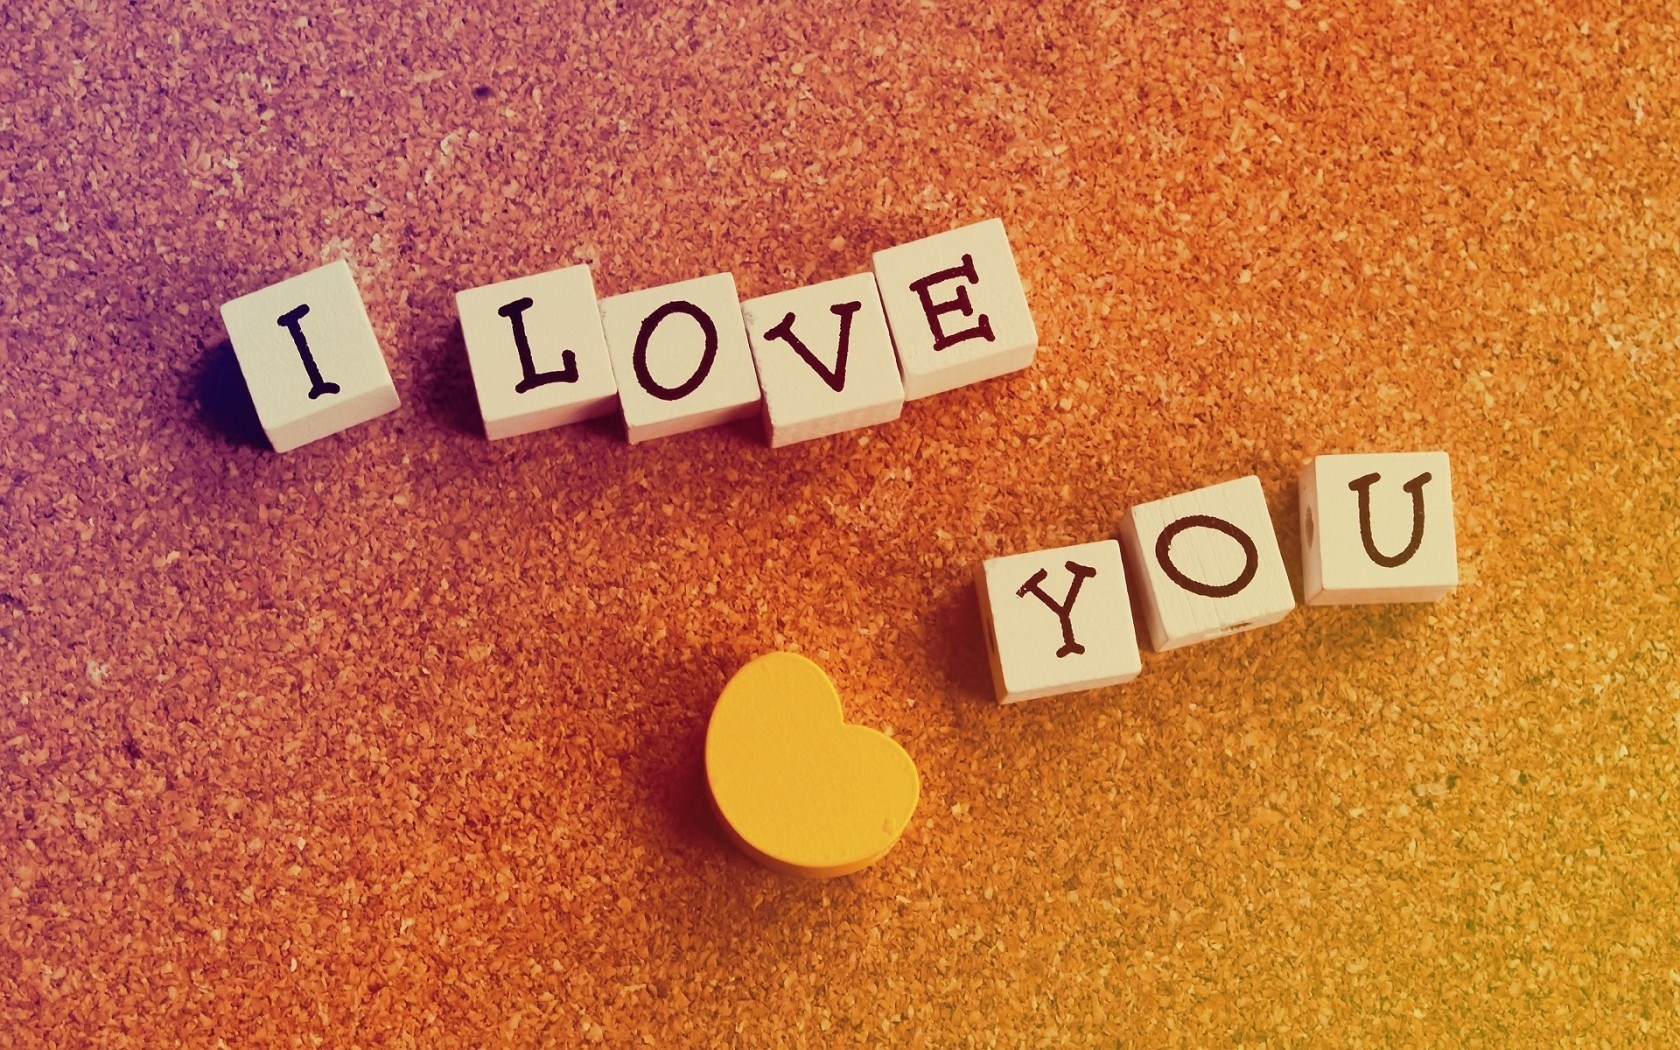 Love Jyoti Wallpaper : Download I Love You Jyoti Wallpaper Gallery